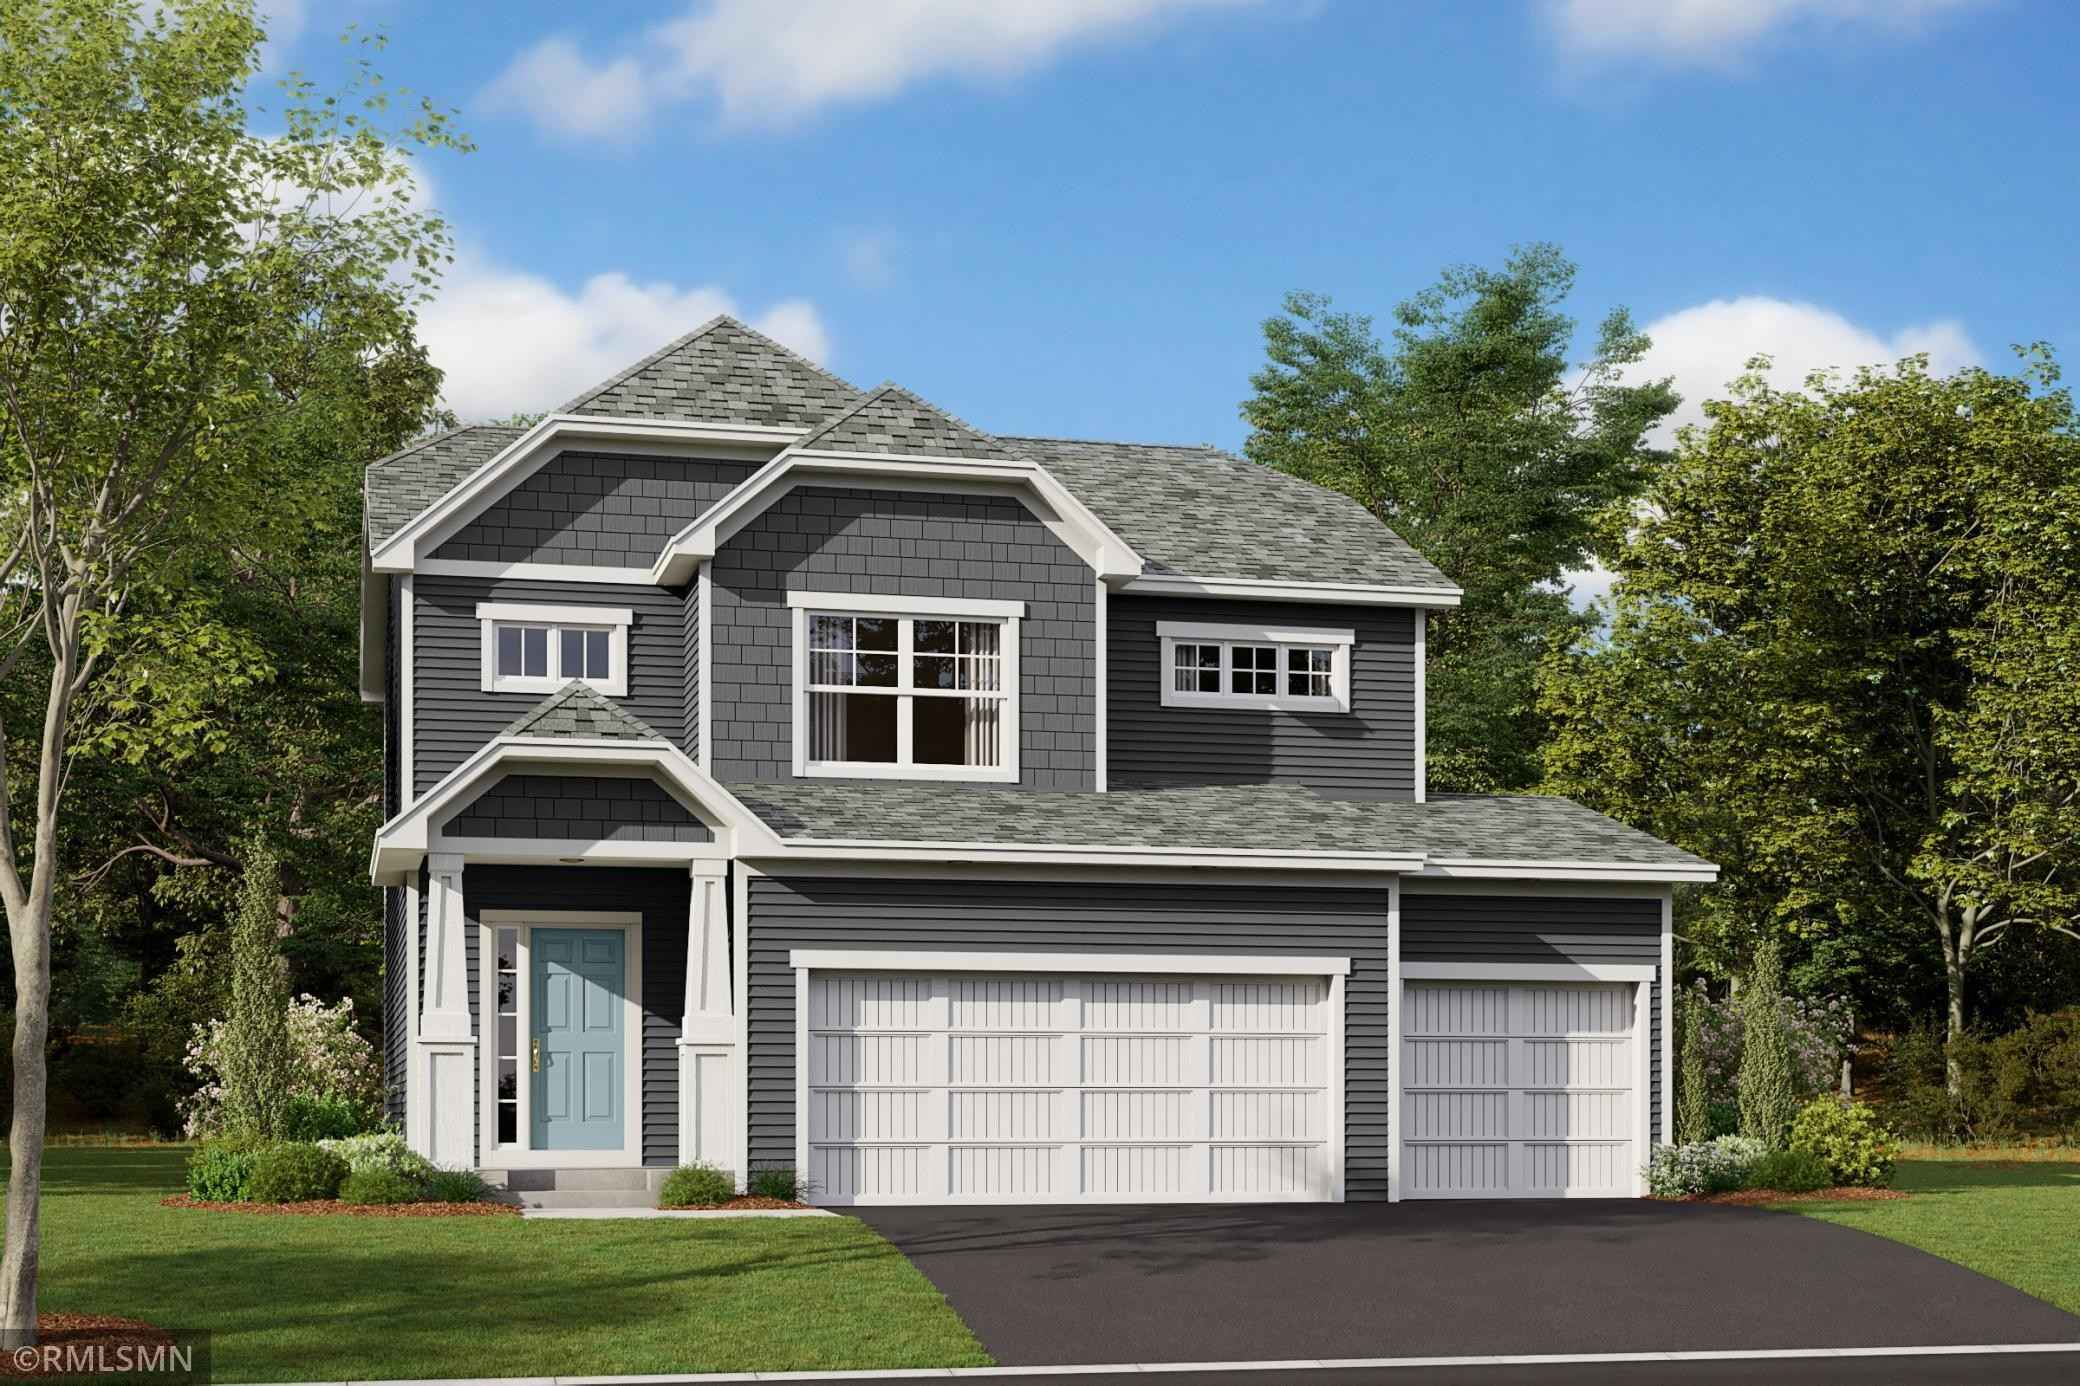 View 1 photos of this 3 bed, 3 bath, and 1,982 sqft. single_family home located at 1017 Catherine Dr, Newport, Minnesota 55055 is Pending for $423,513.